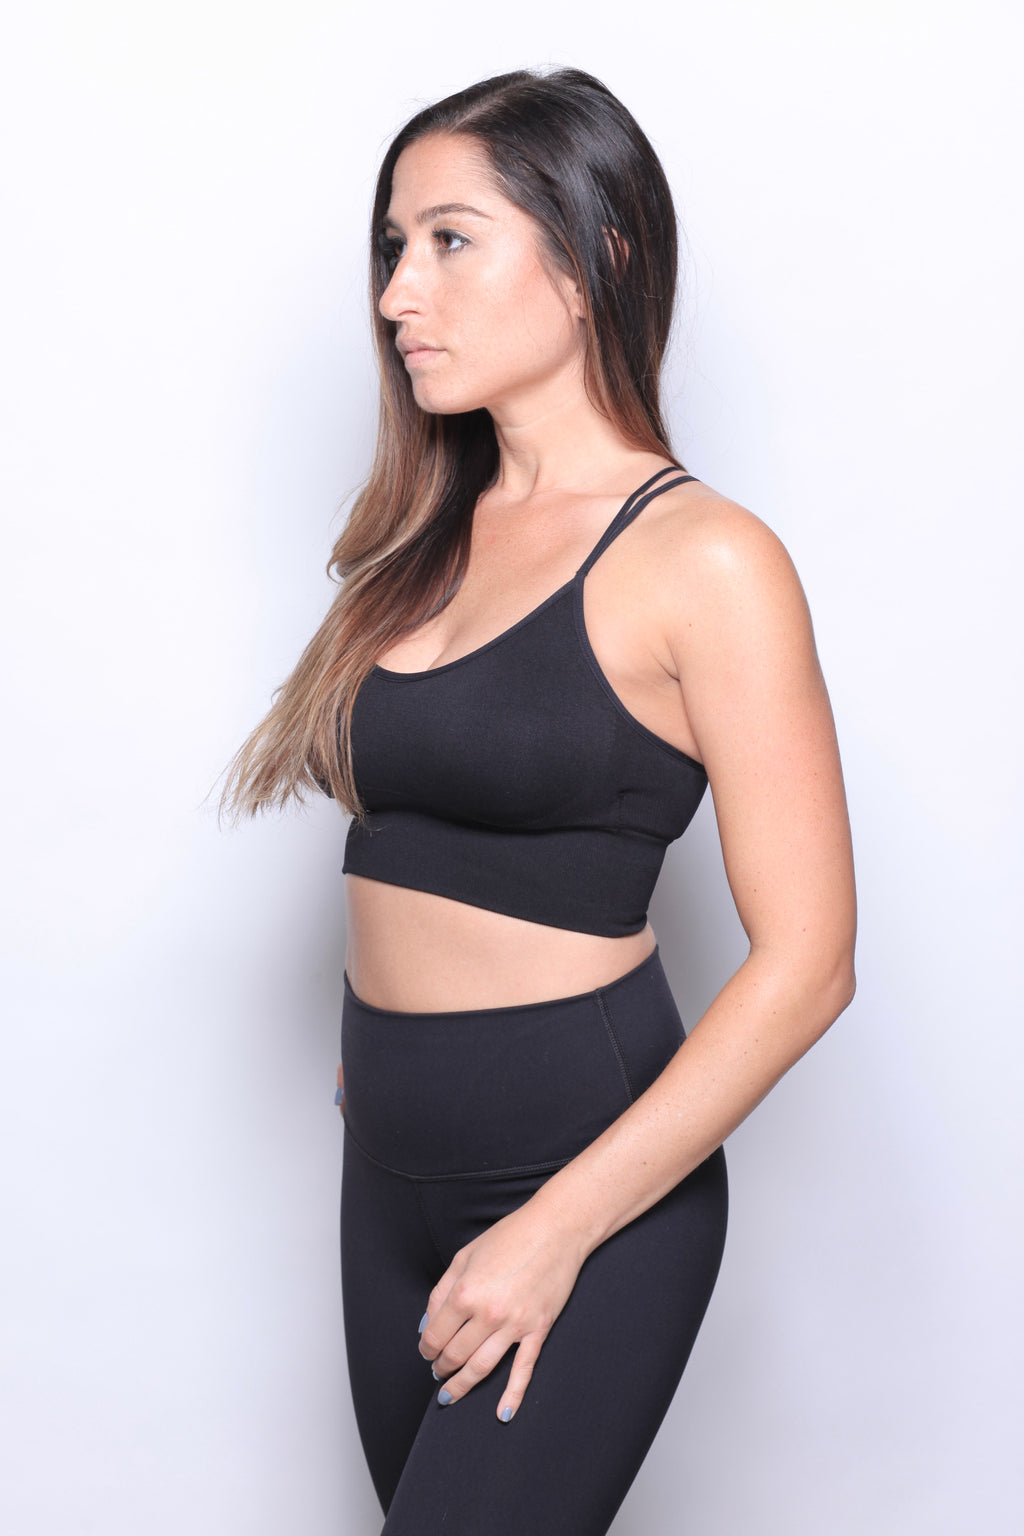 THKST Resolute Reborn Sports Bra - Black